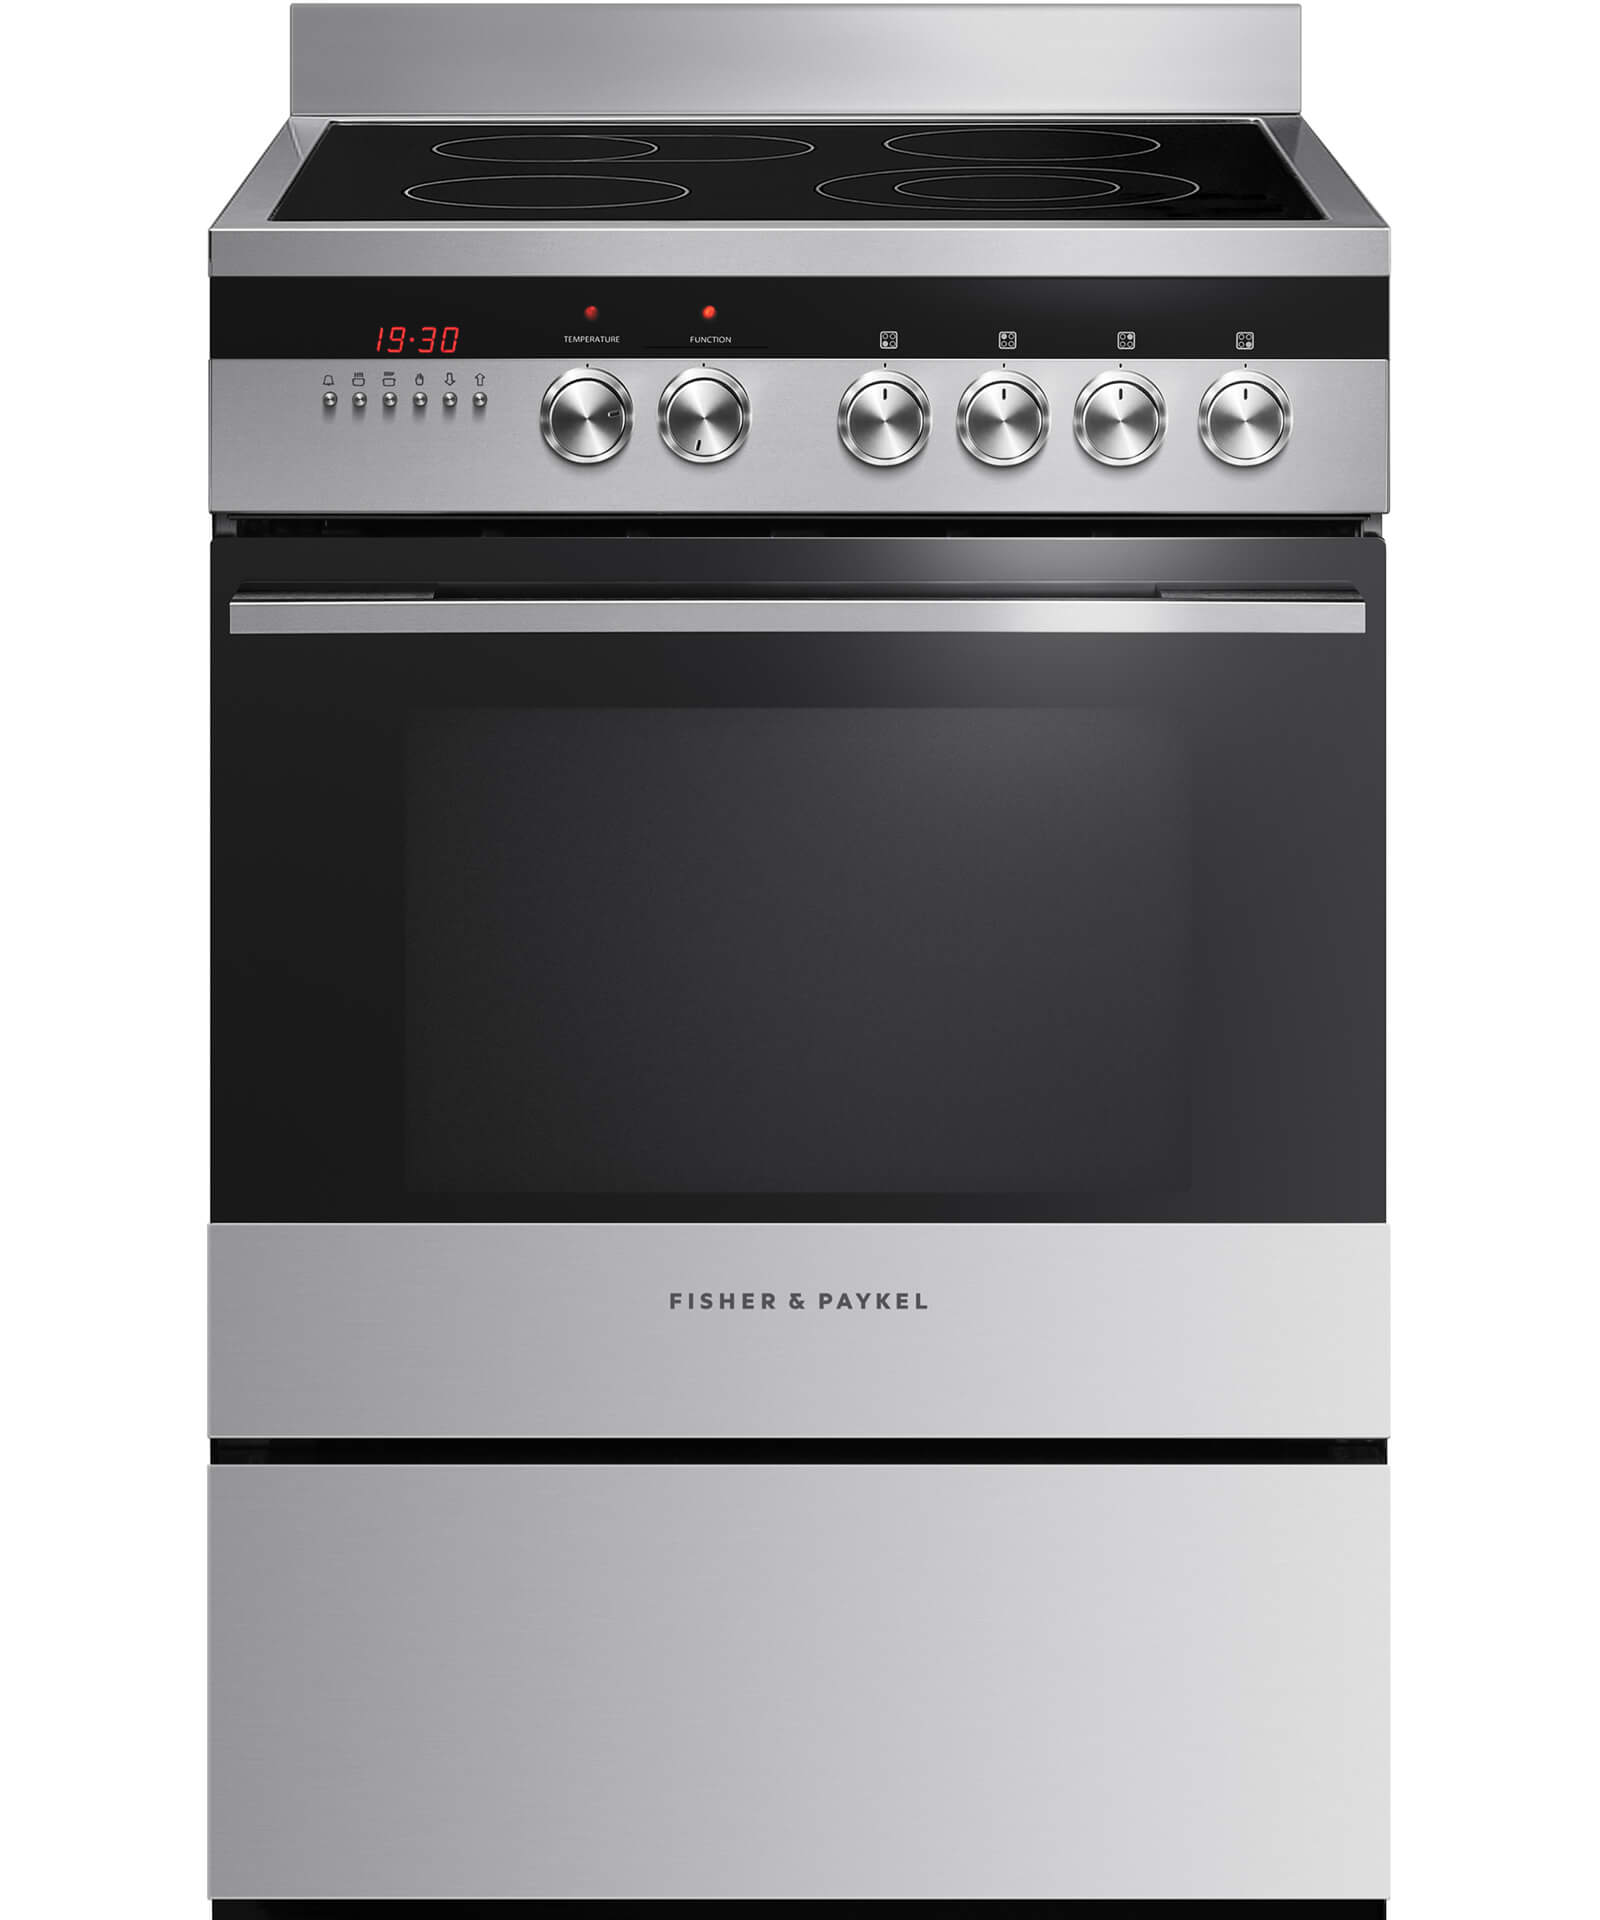 OR60SDBSX2 - 60cm Freestanding Cooker - 81551